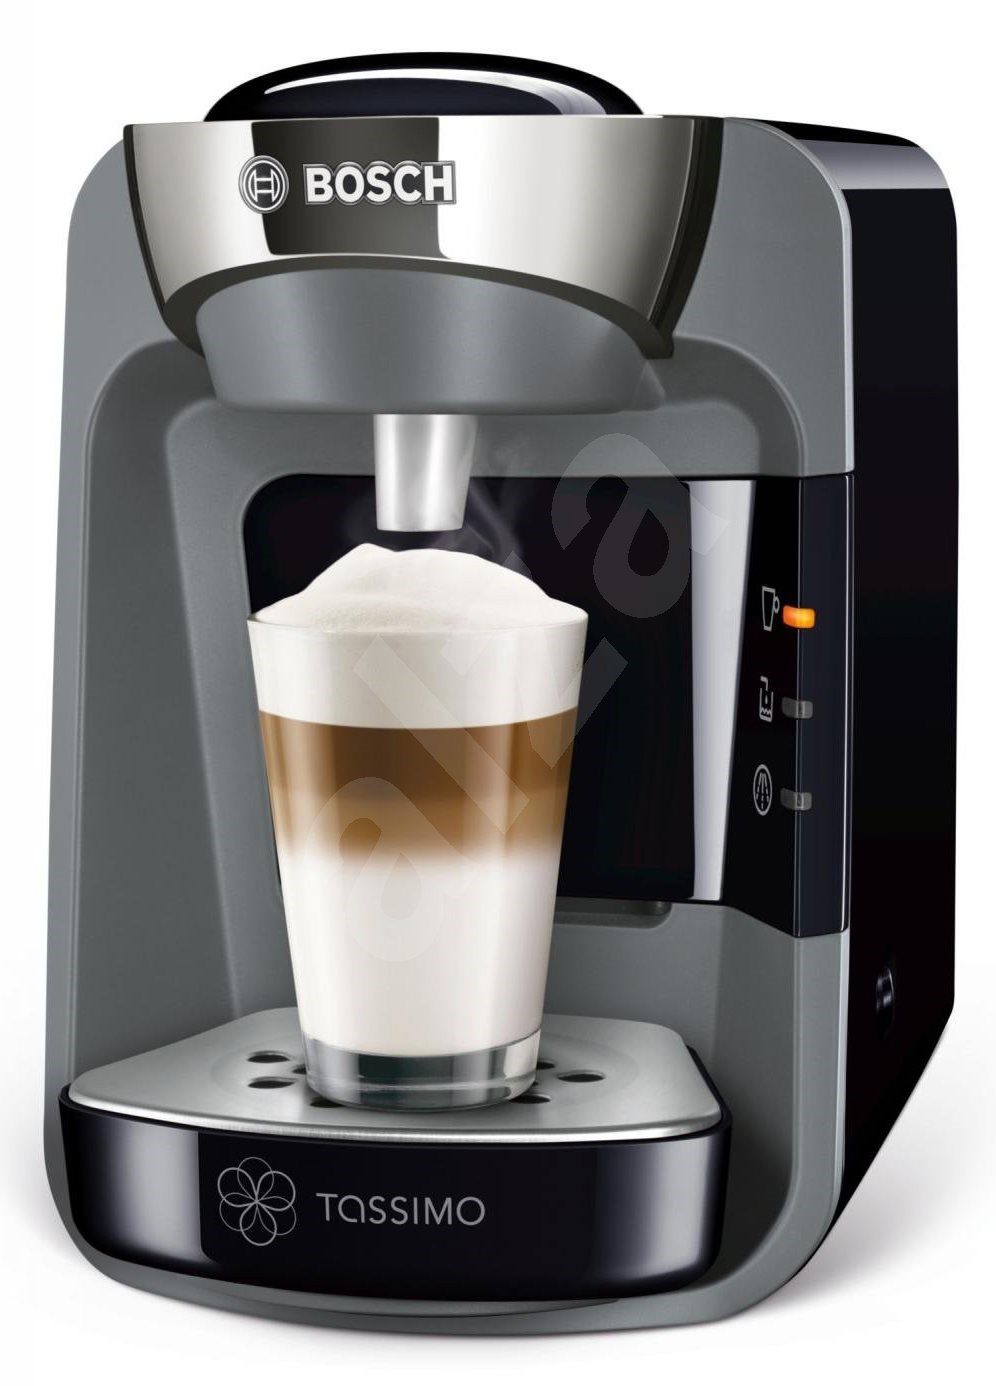 bosch tassimo tas3202 suny capsule coffee machine. Black Bedroom Furniture Sets. Home Design Ideas